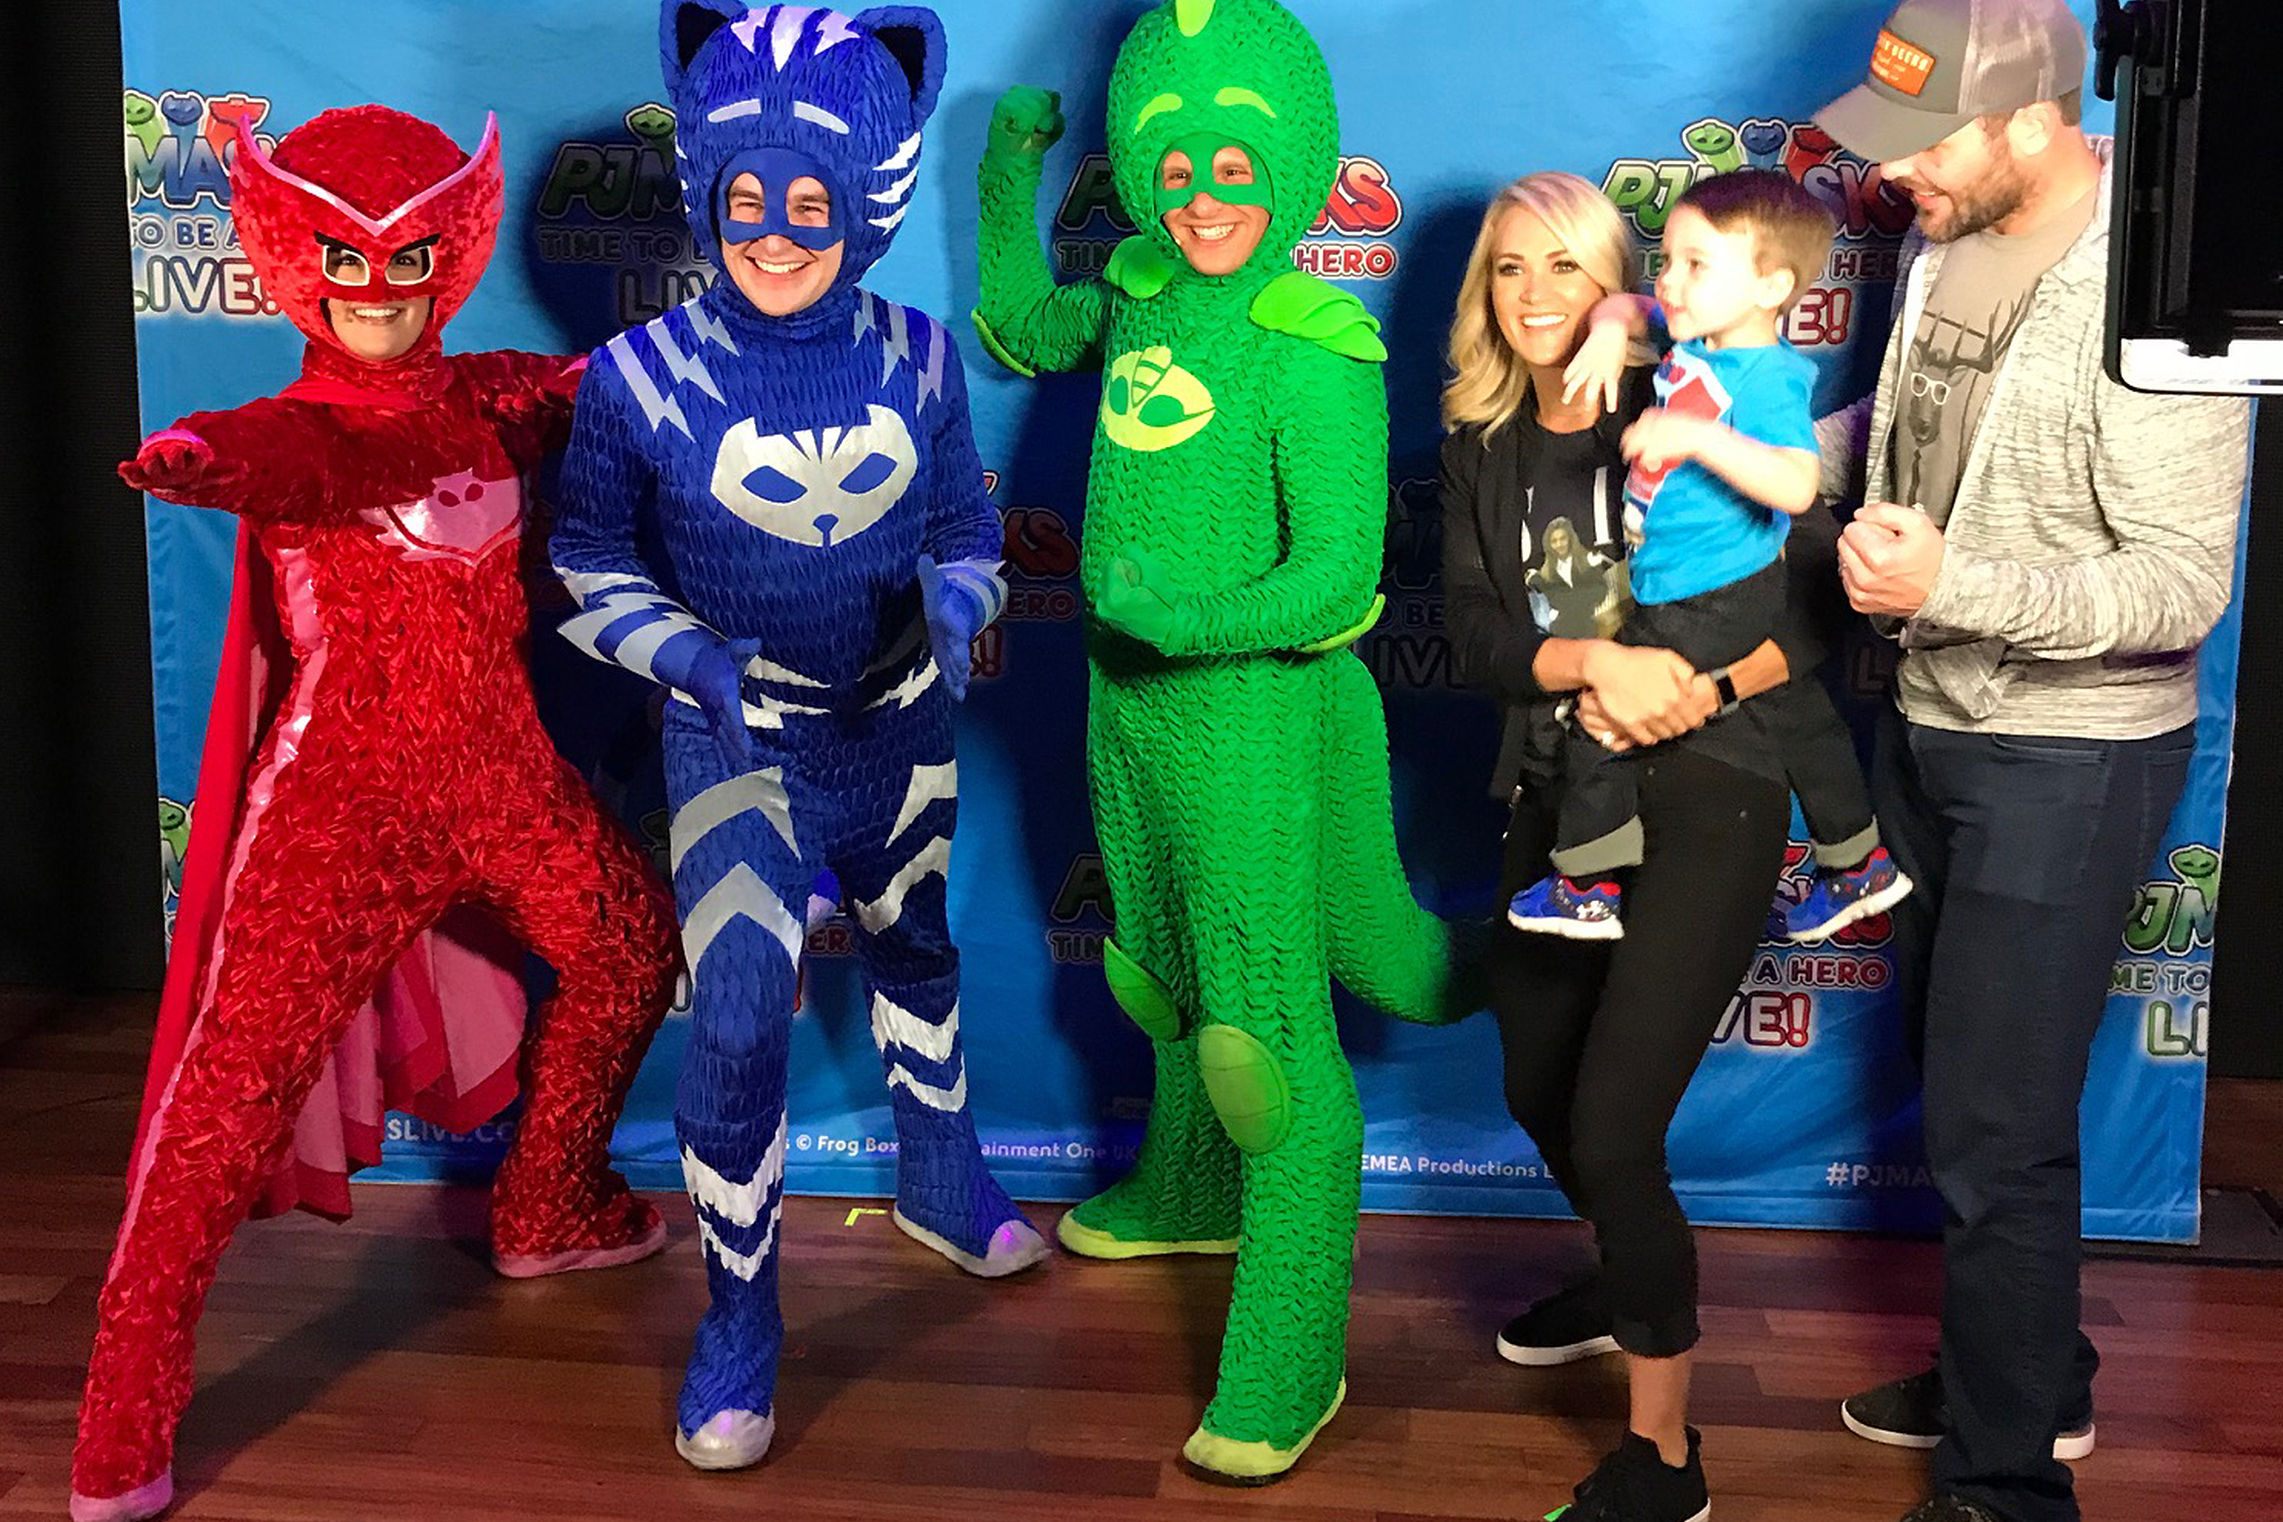 Superhero in Training! Carrie Underwood Takes Son Isaiah to See PJ Masks Live - and Pose with the Characters